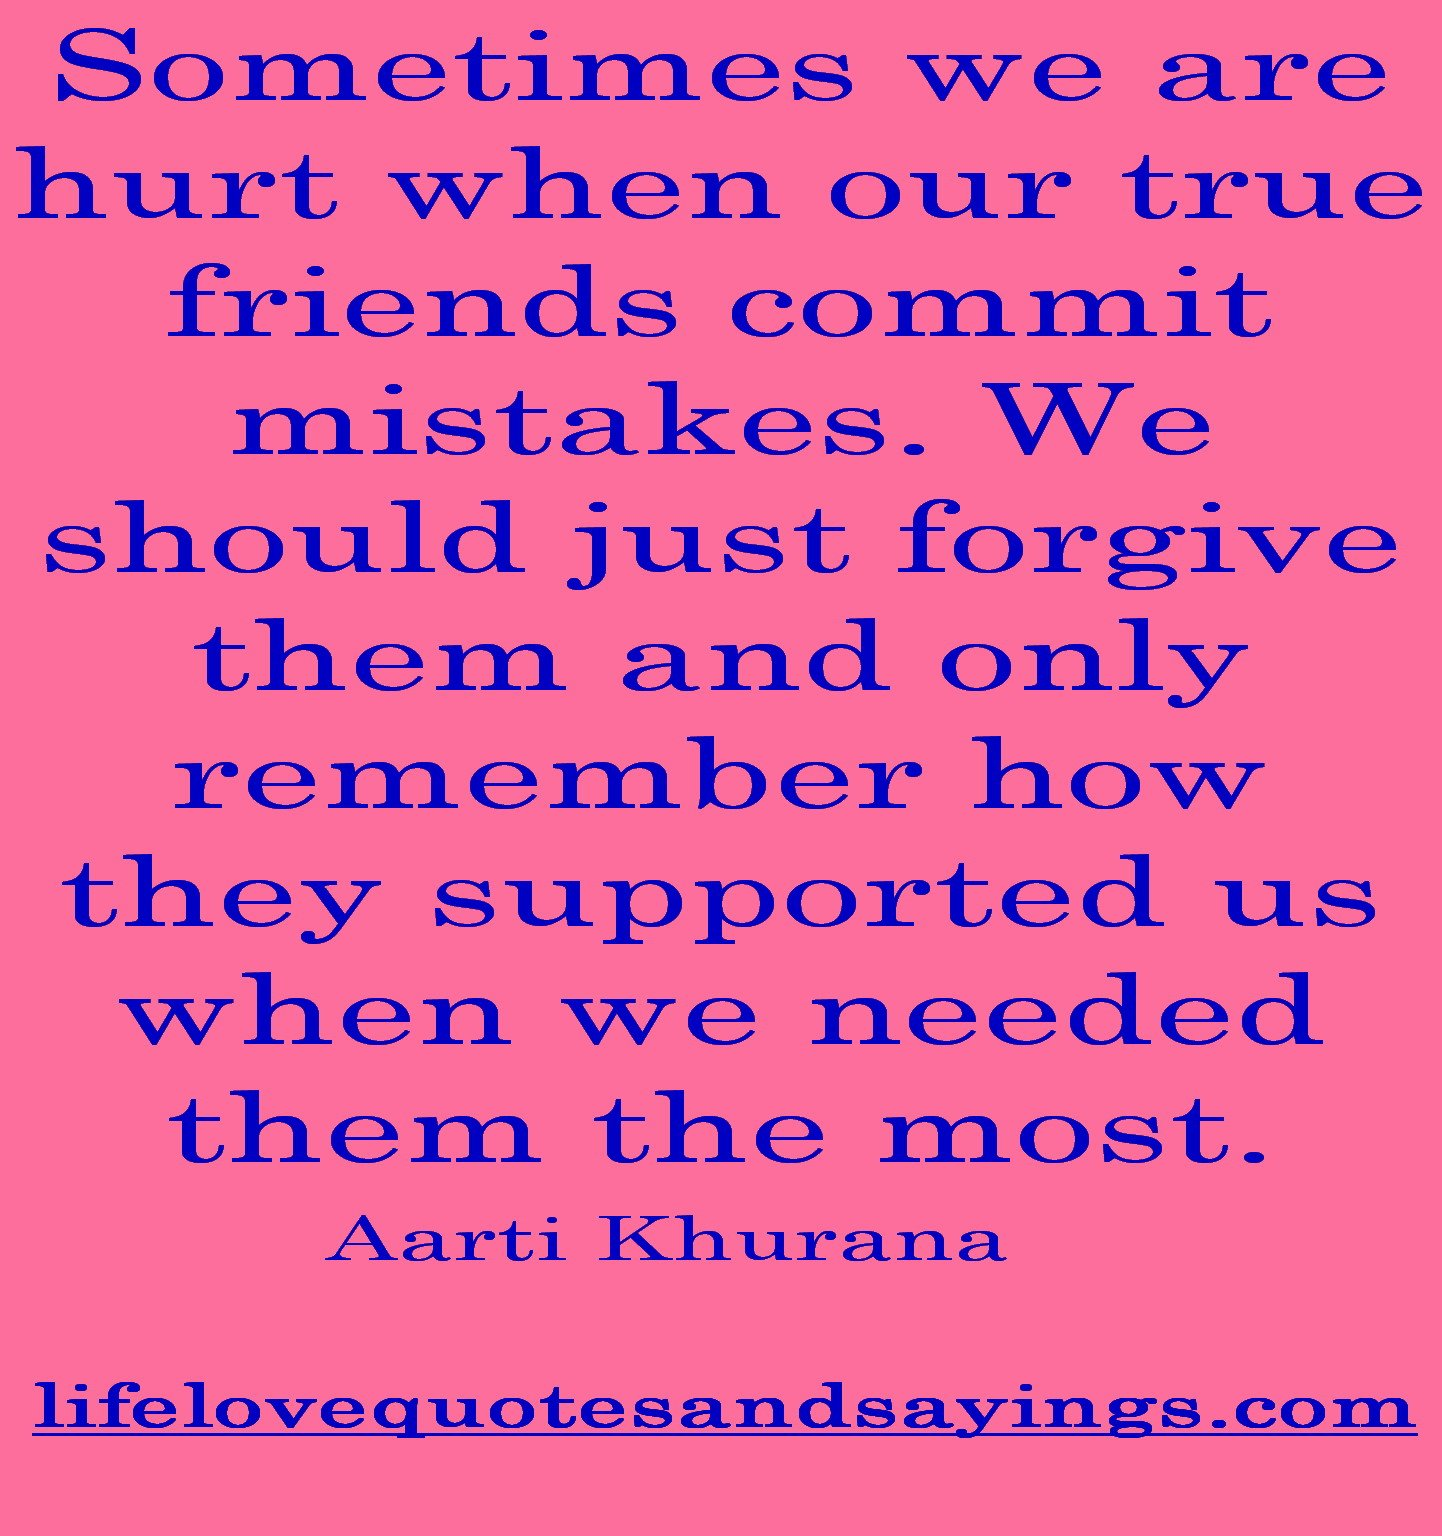 Love Quote And Sayings: True Love Quotes And Sayings. QuotesGram